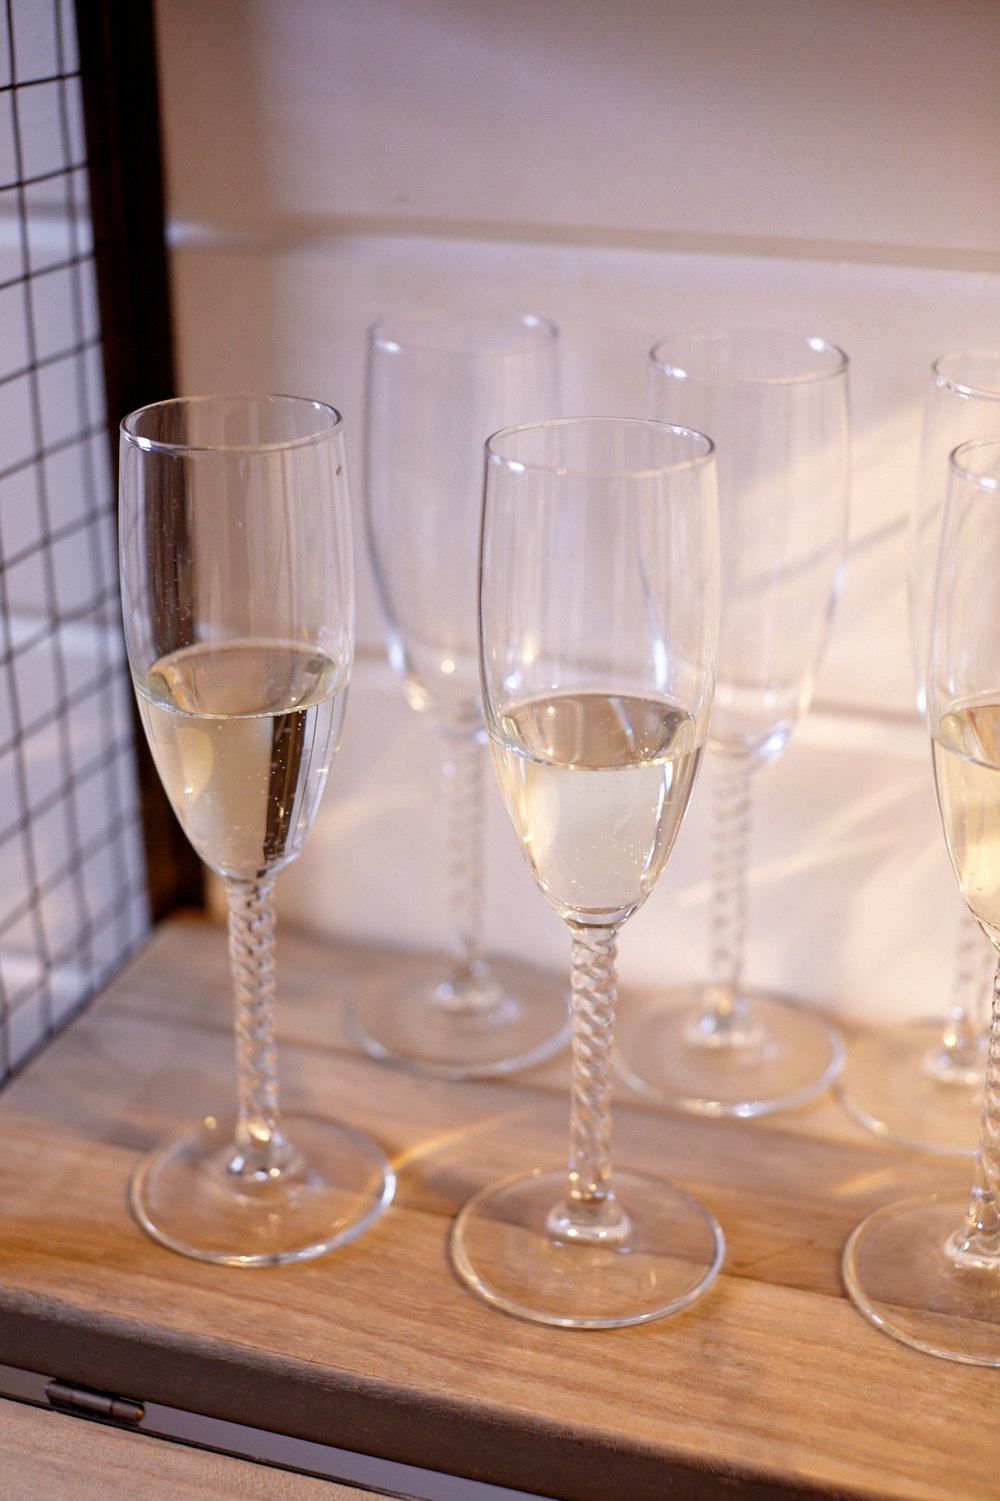 champagne glasses in the bride's room.jpg